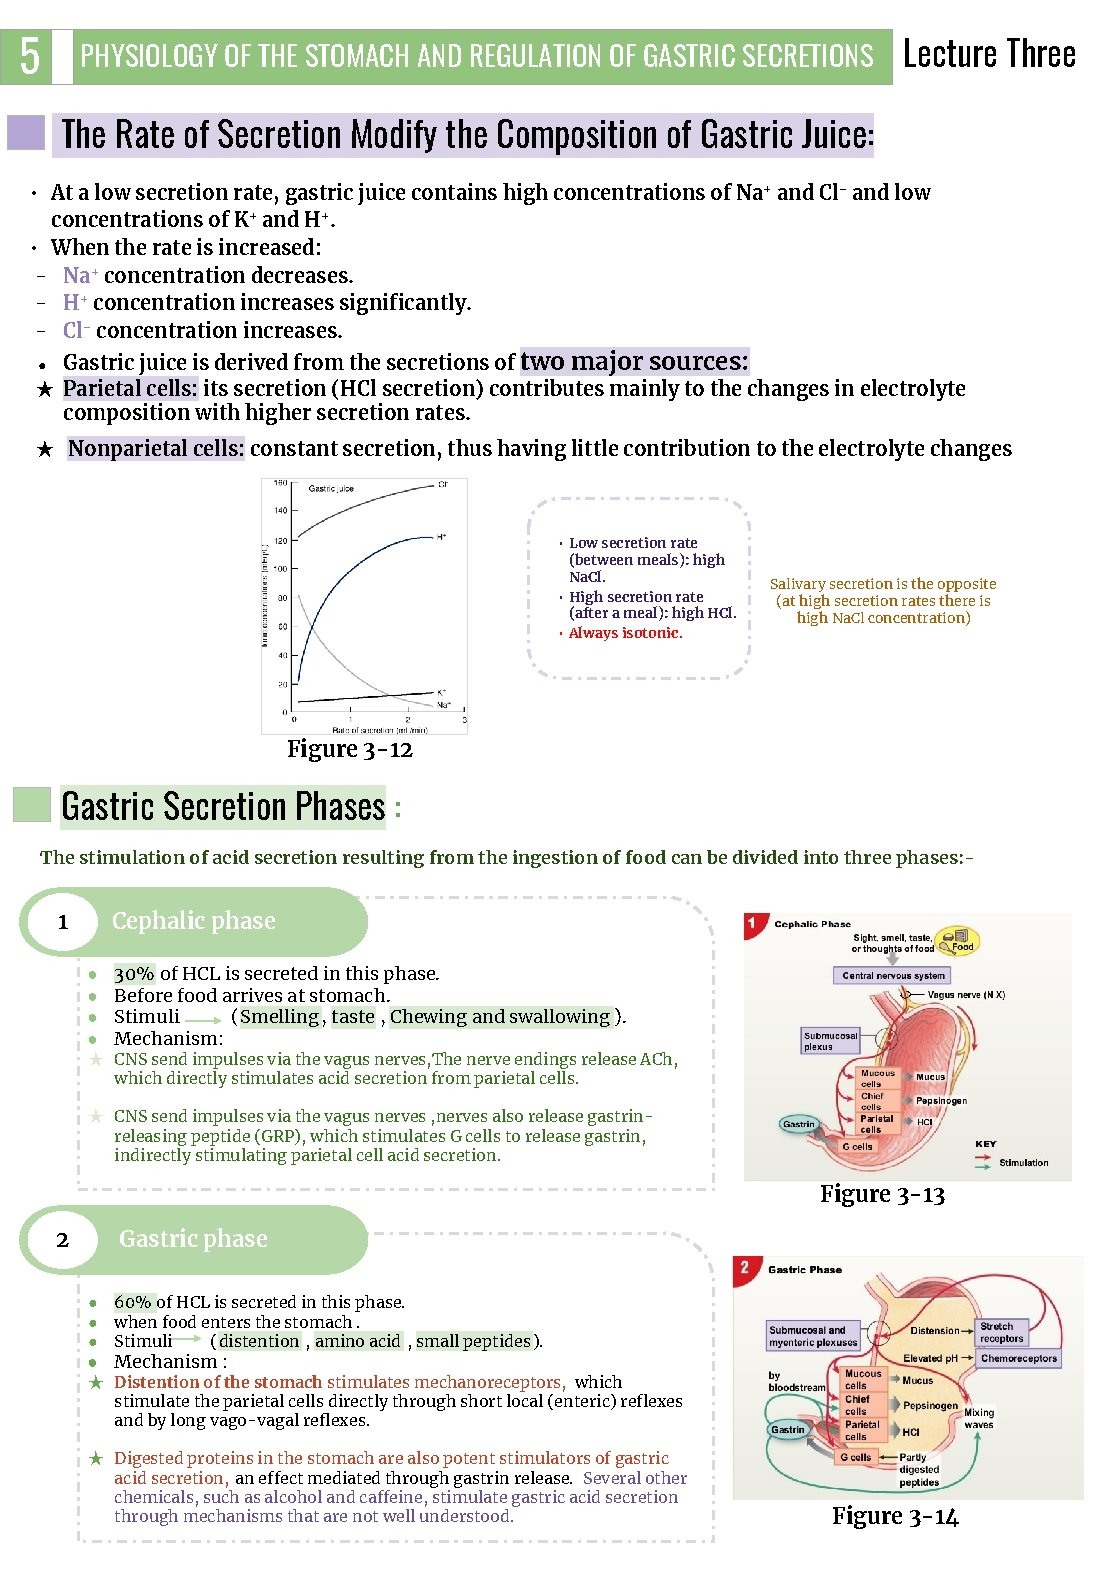 5 PHYSIOLOGY OF THE STOMACH AND REGULATION OF GASTRIC SECRETIONS Lecture Three The Rate